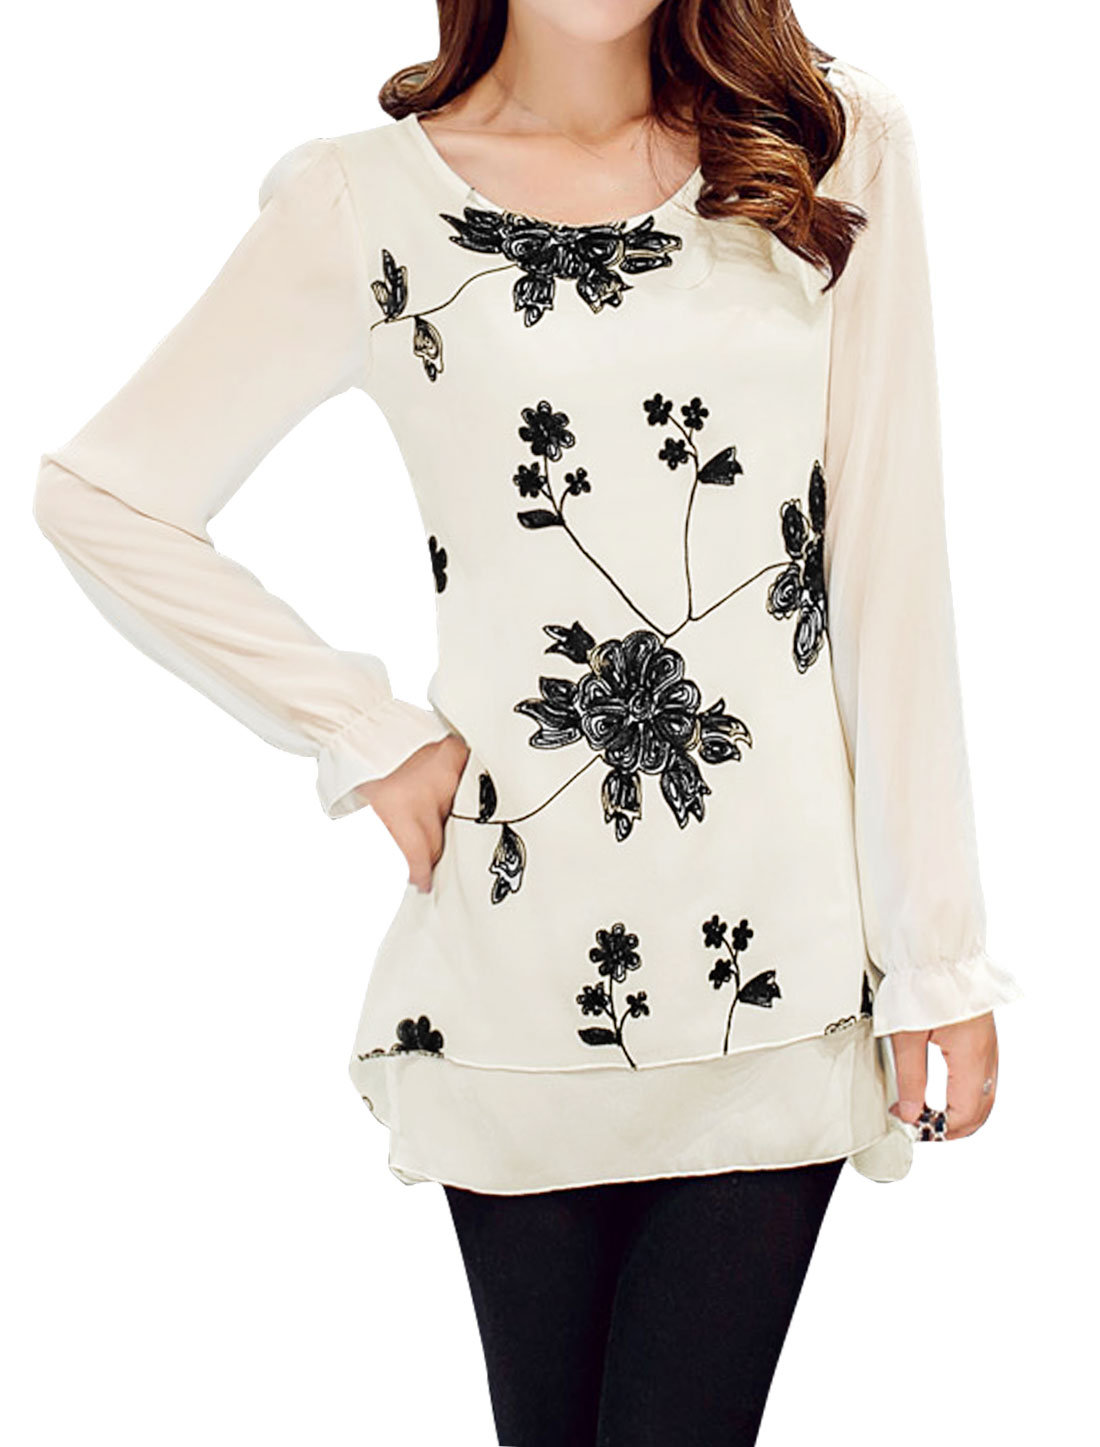 Women Flower Stitched Asymmetric Layered Tunic Blouse White S